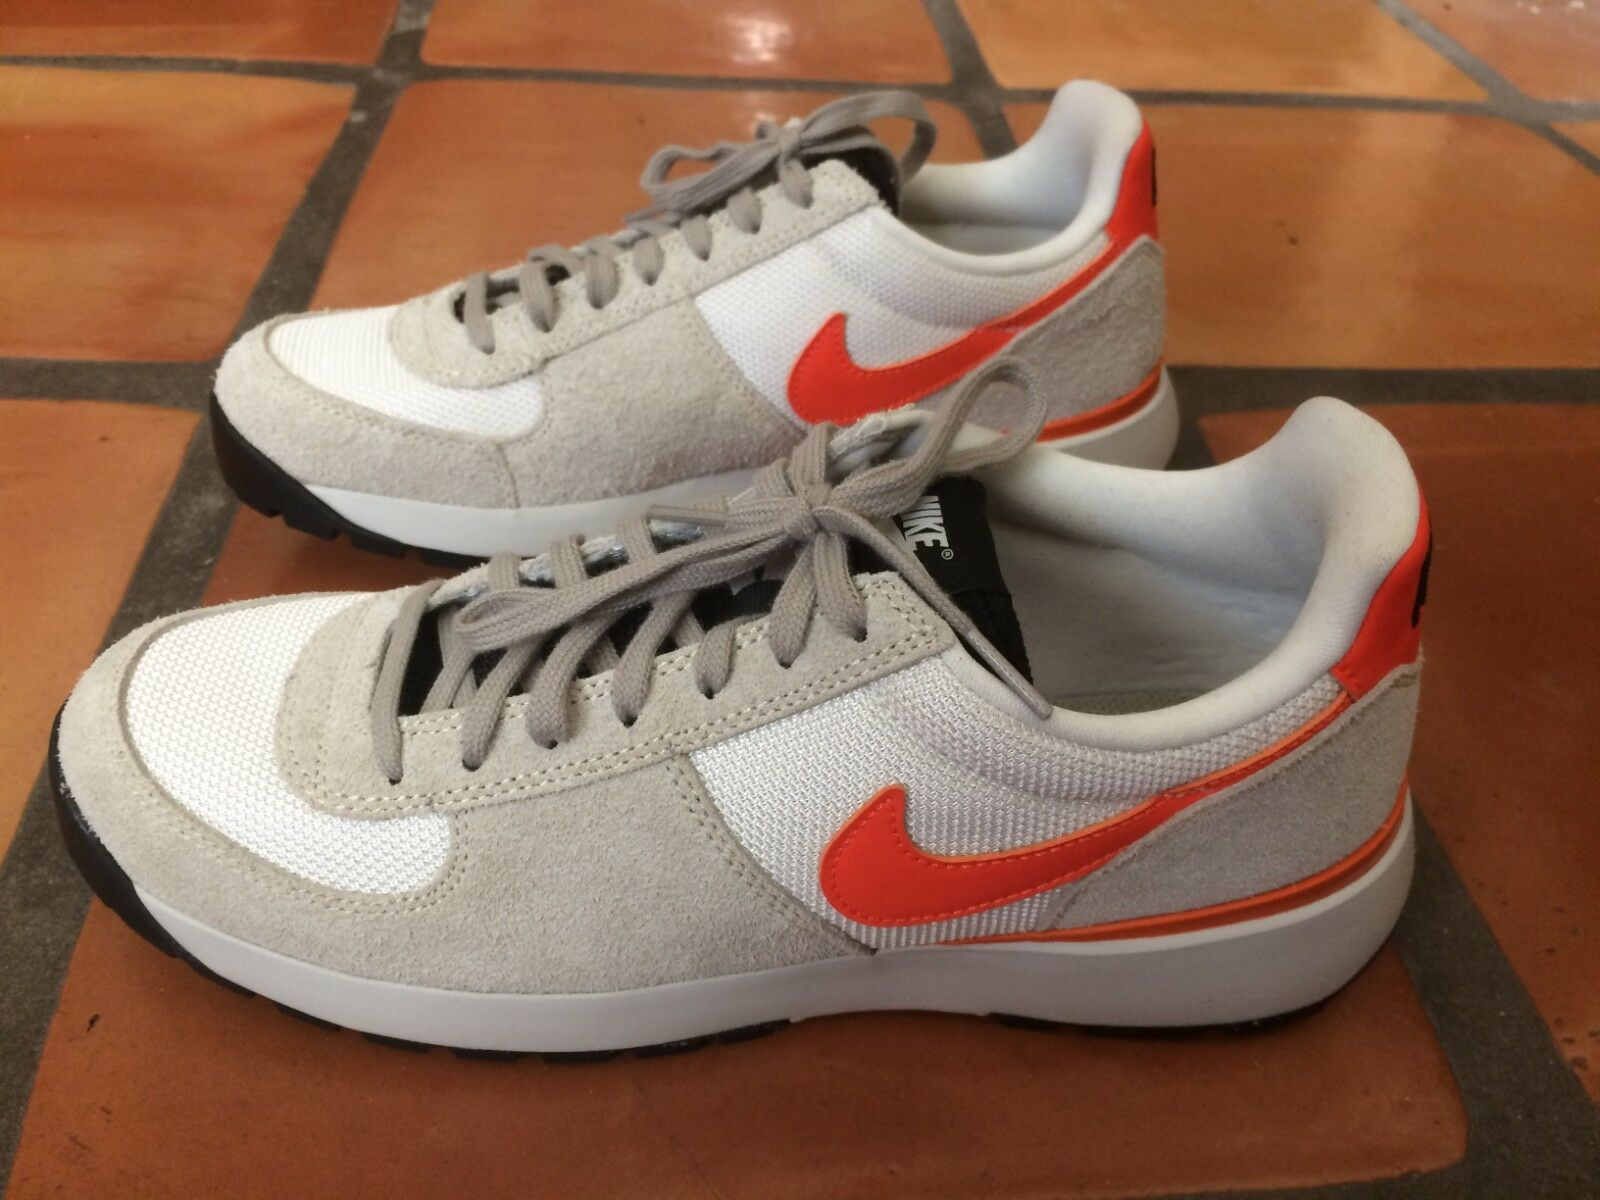 Nike Lavadome Ultra, 8.5 Mens, Brand New and Rare